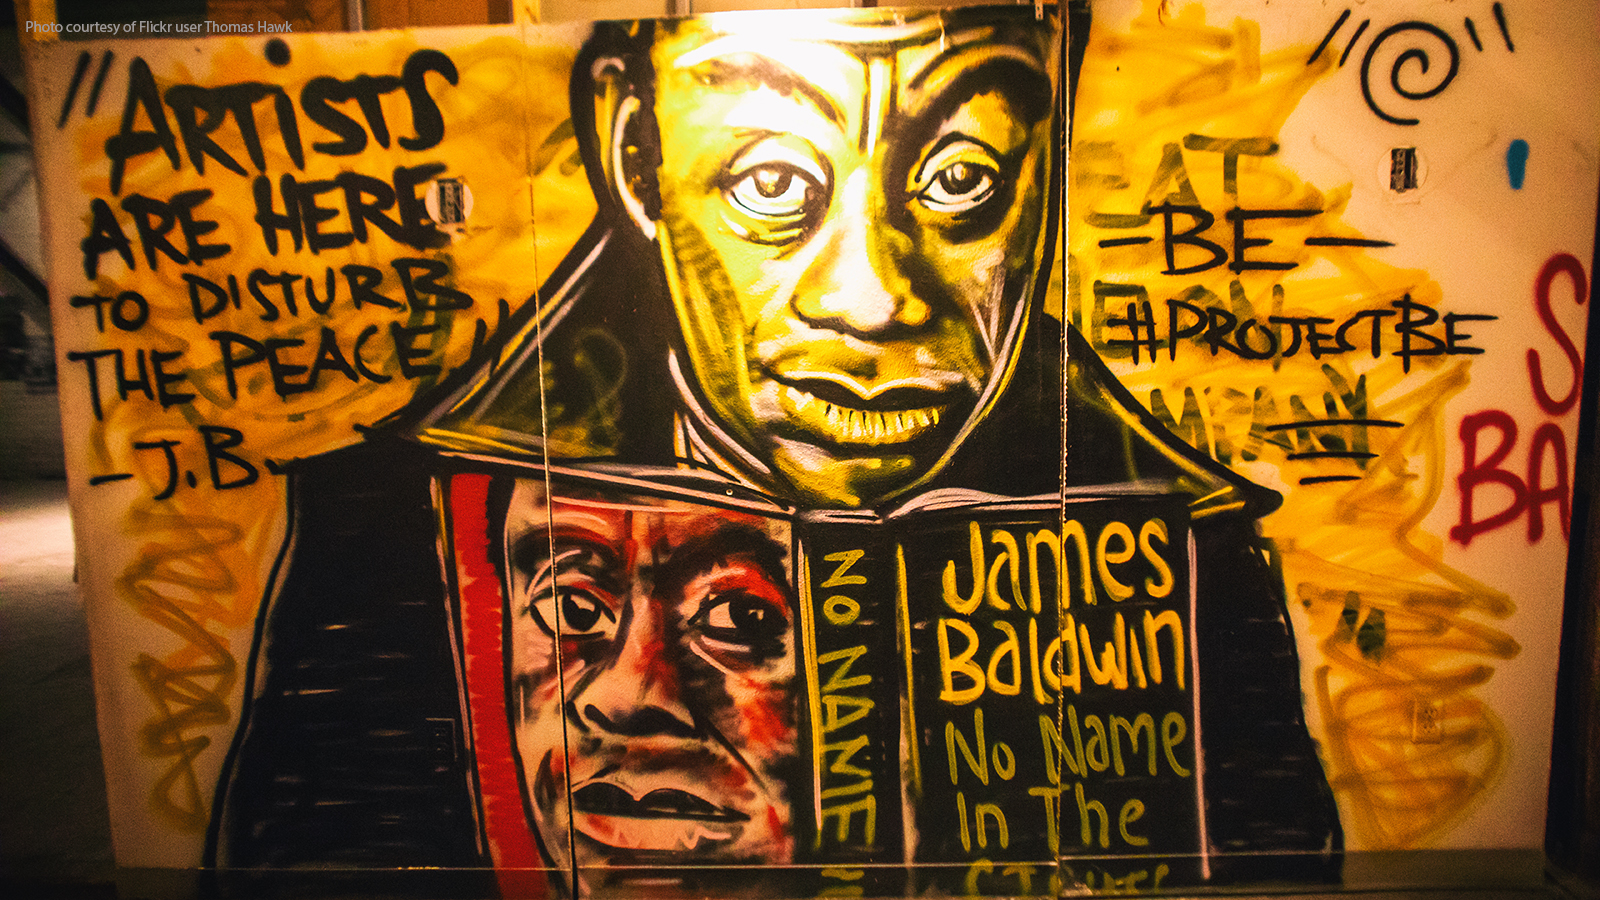 James Baldwin graffiti